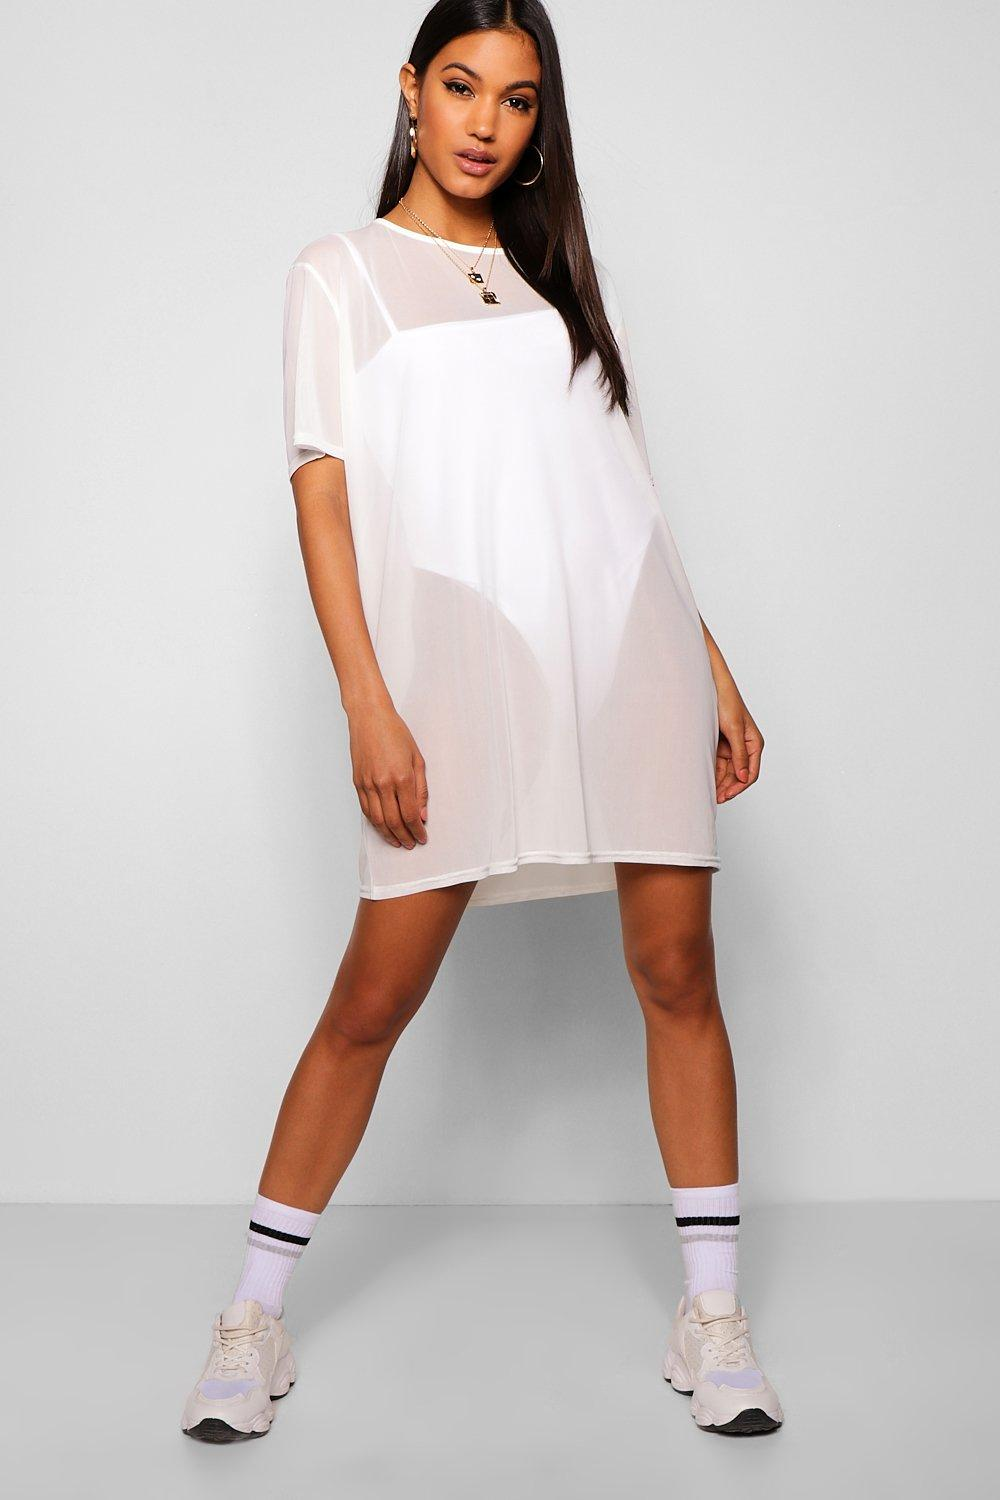 online for sale diversified latest designs limpid in sight Oversized Mesh T-Shirt Dress | Boohoo